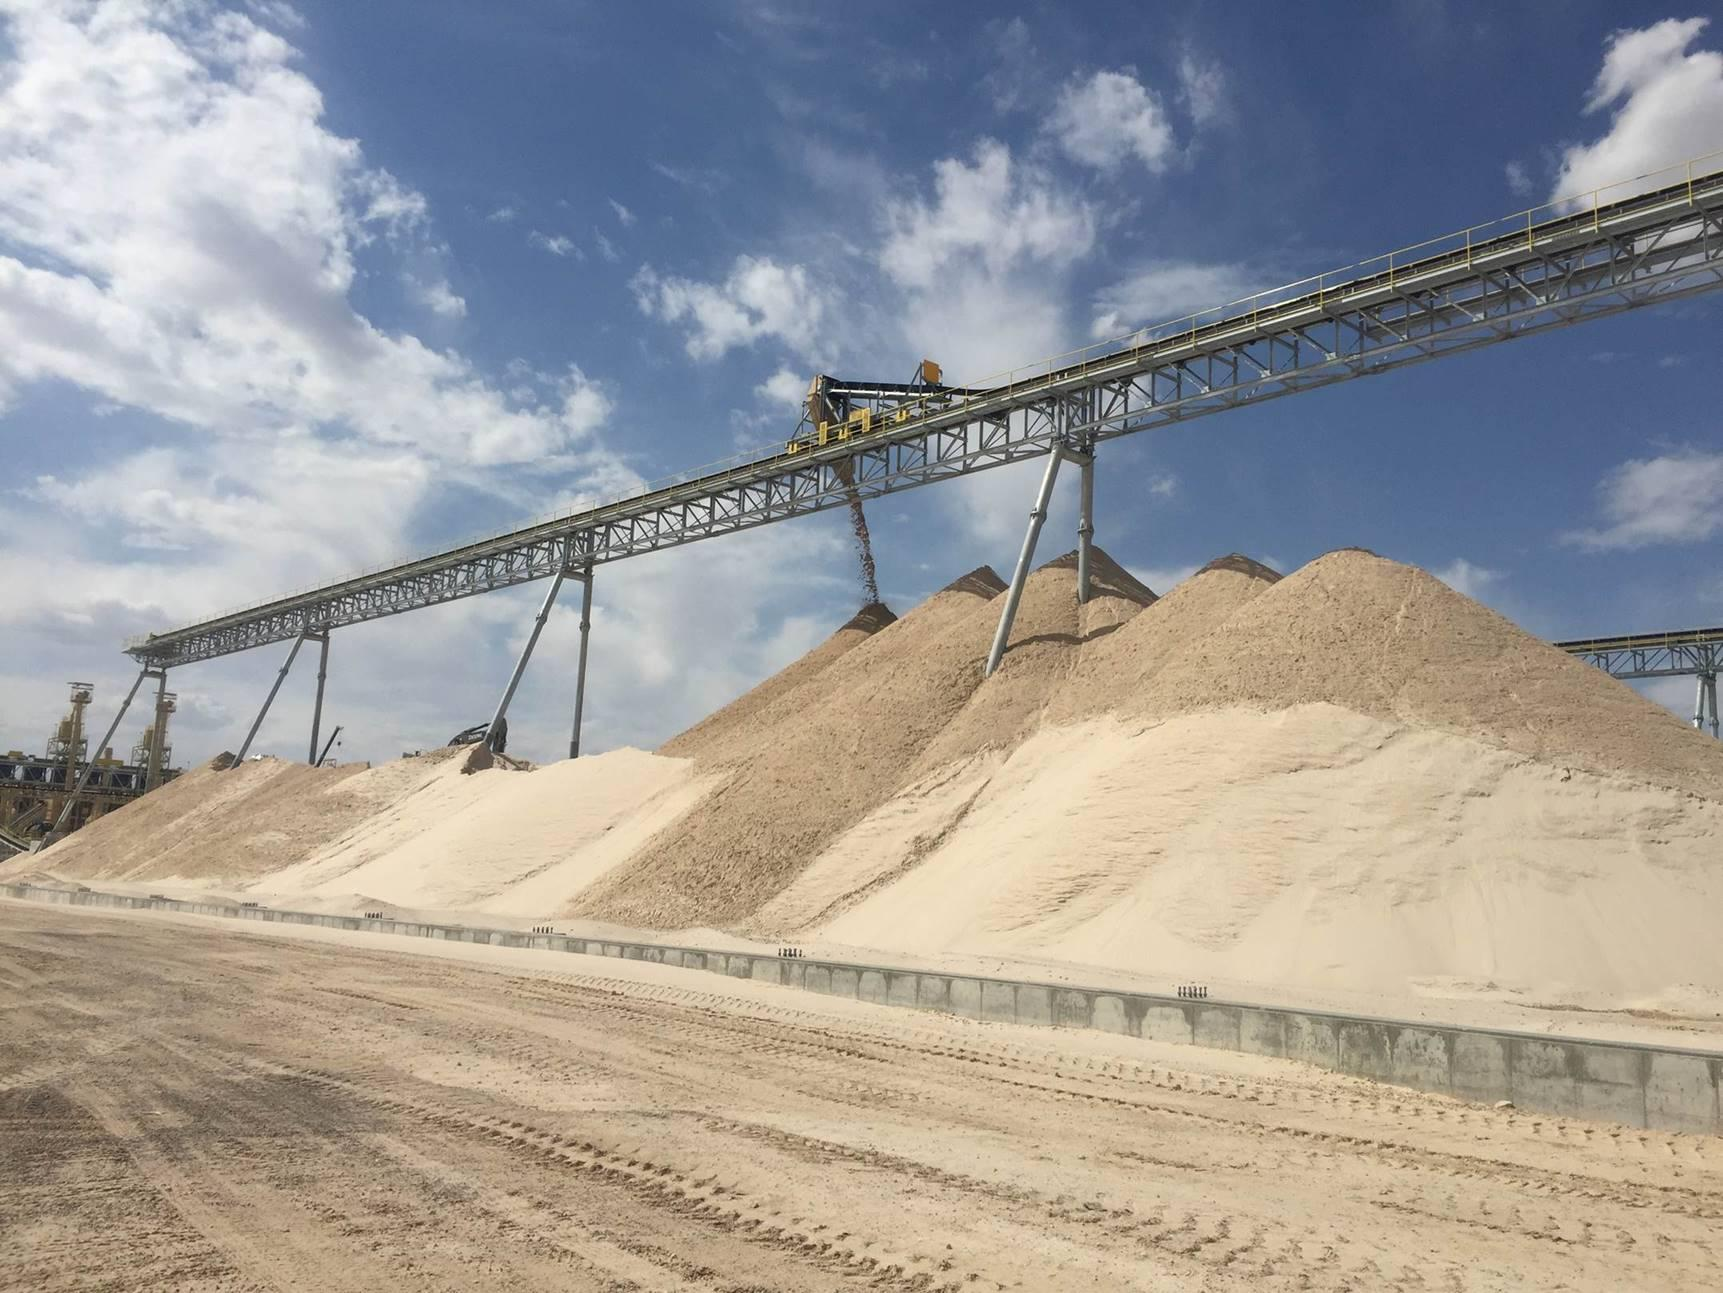 Frac Sand mining at the El Dorado Mine in the Permian Basin